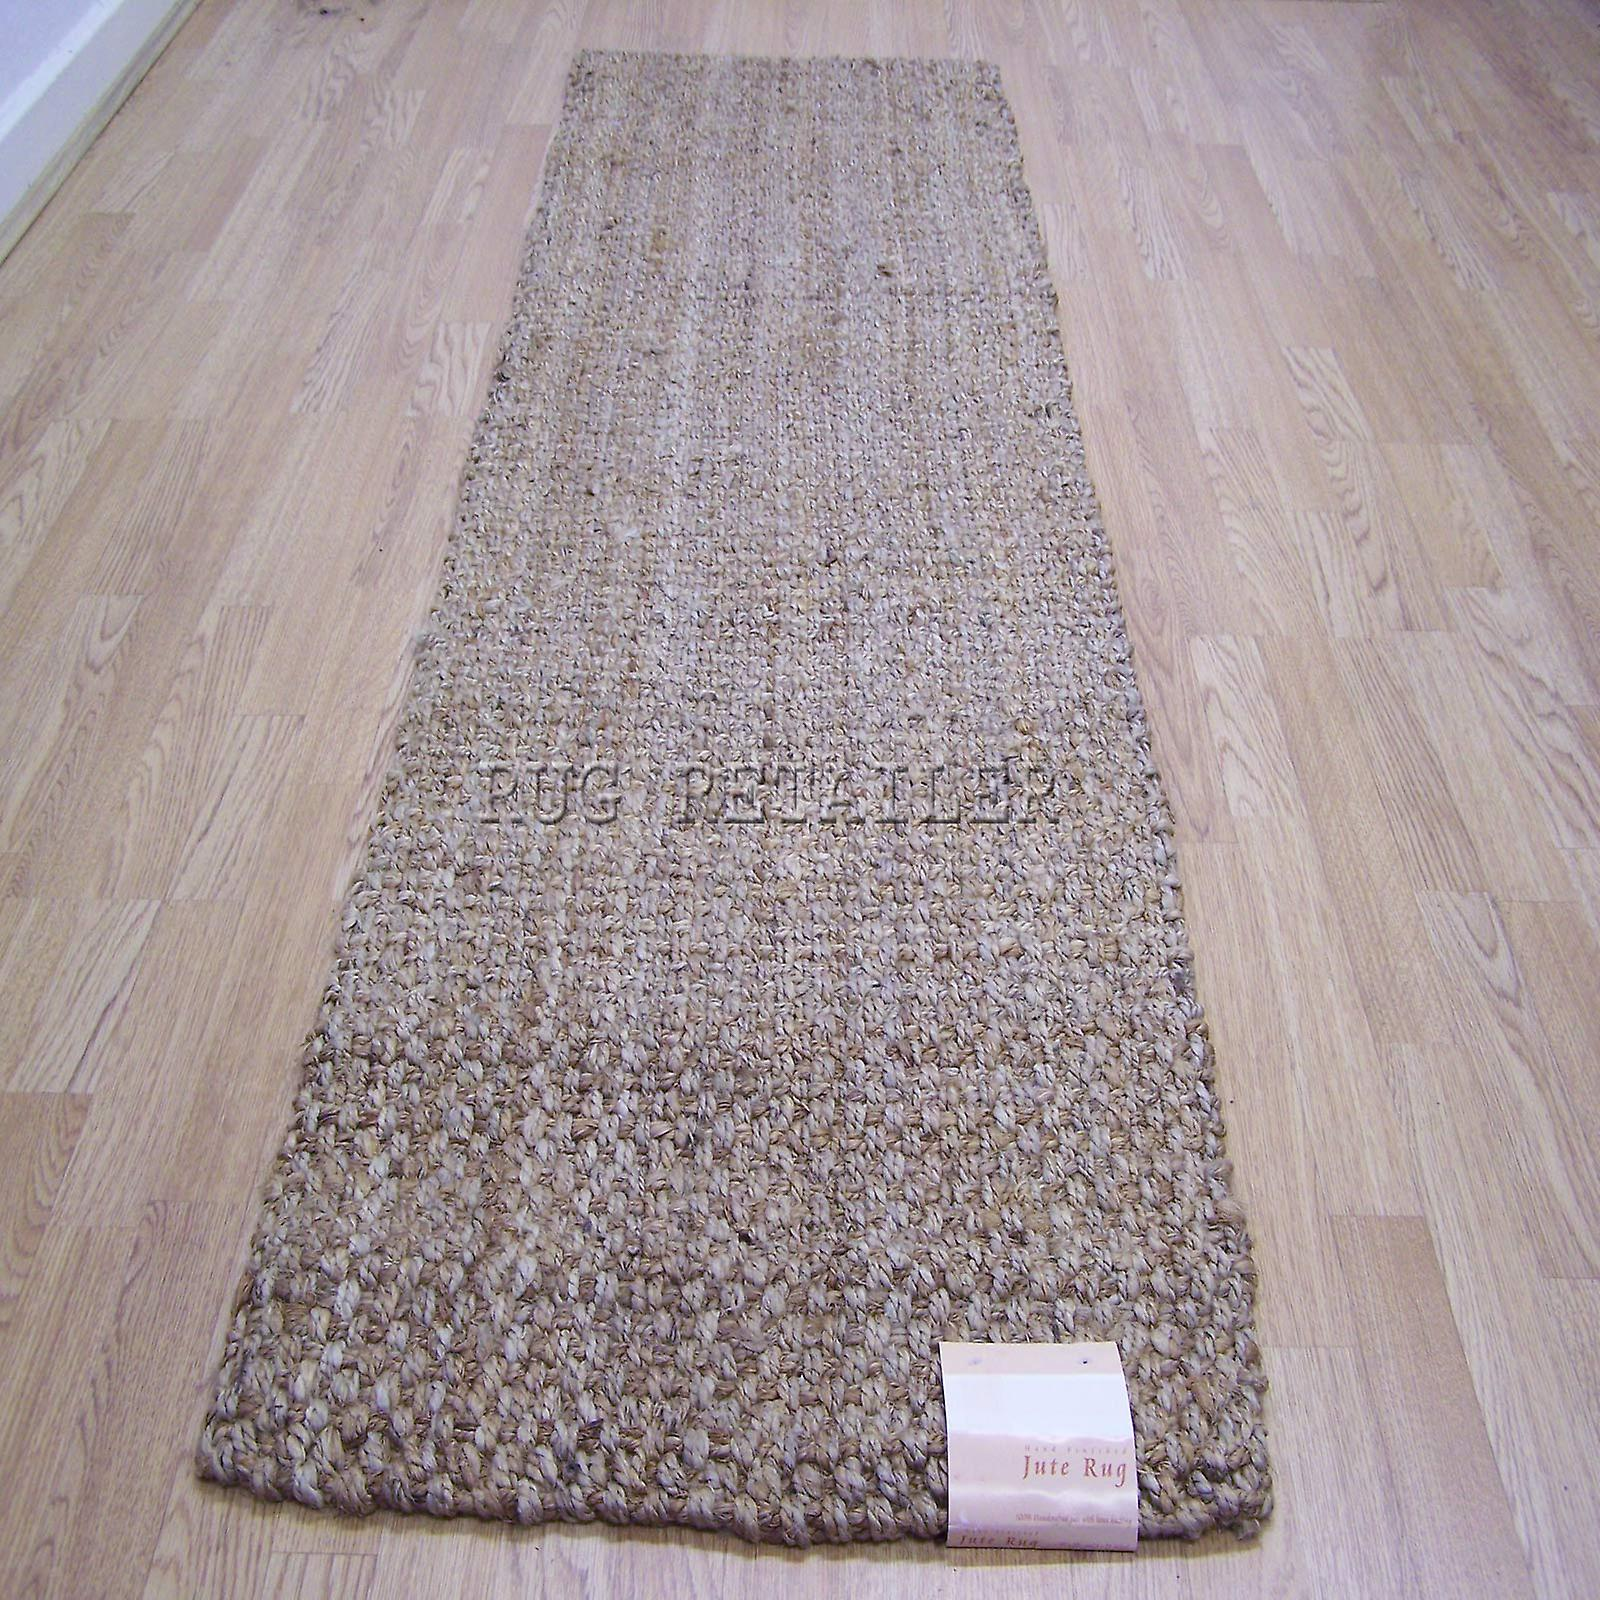 The Anji Mountain Mira Jute Rug features a The Anji Mountain Mira Jute Rug features a large boucle weave and brings a magnificent chunky texture to nearly any space. This rug is expertly handloom-woven by skilled weavers who employ traditional techniques to create this simply beautiful style.